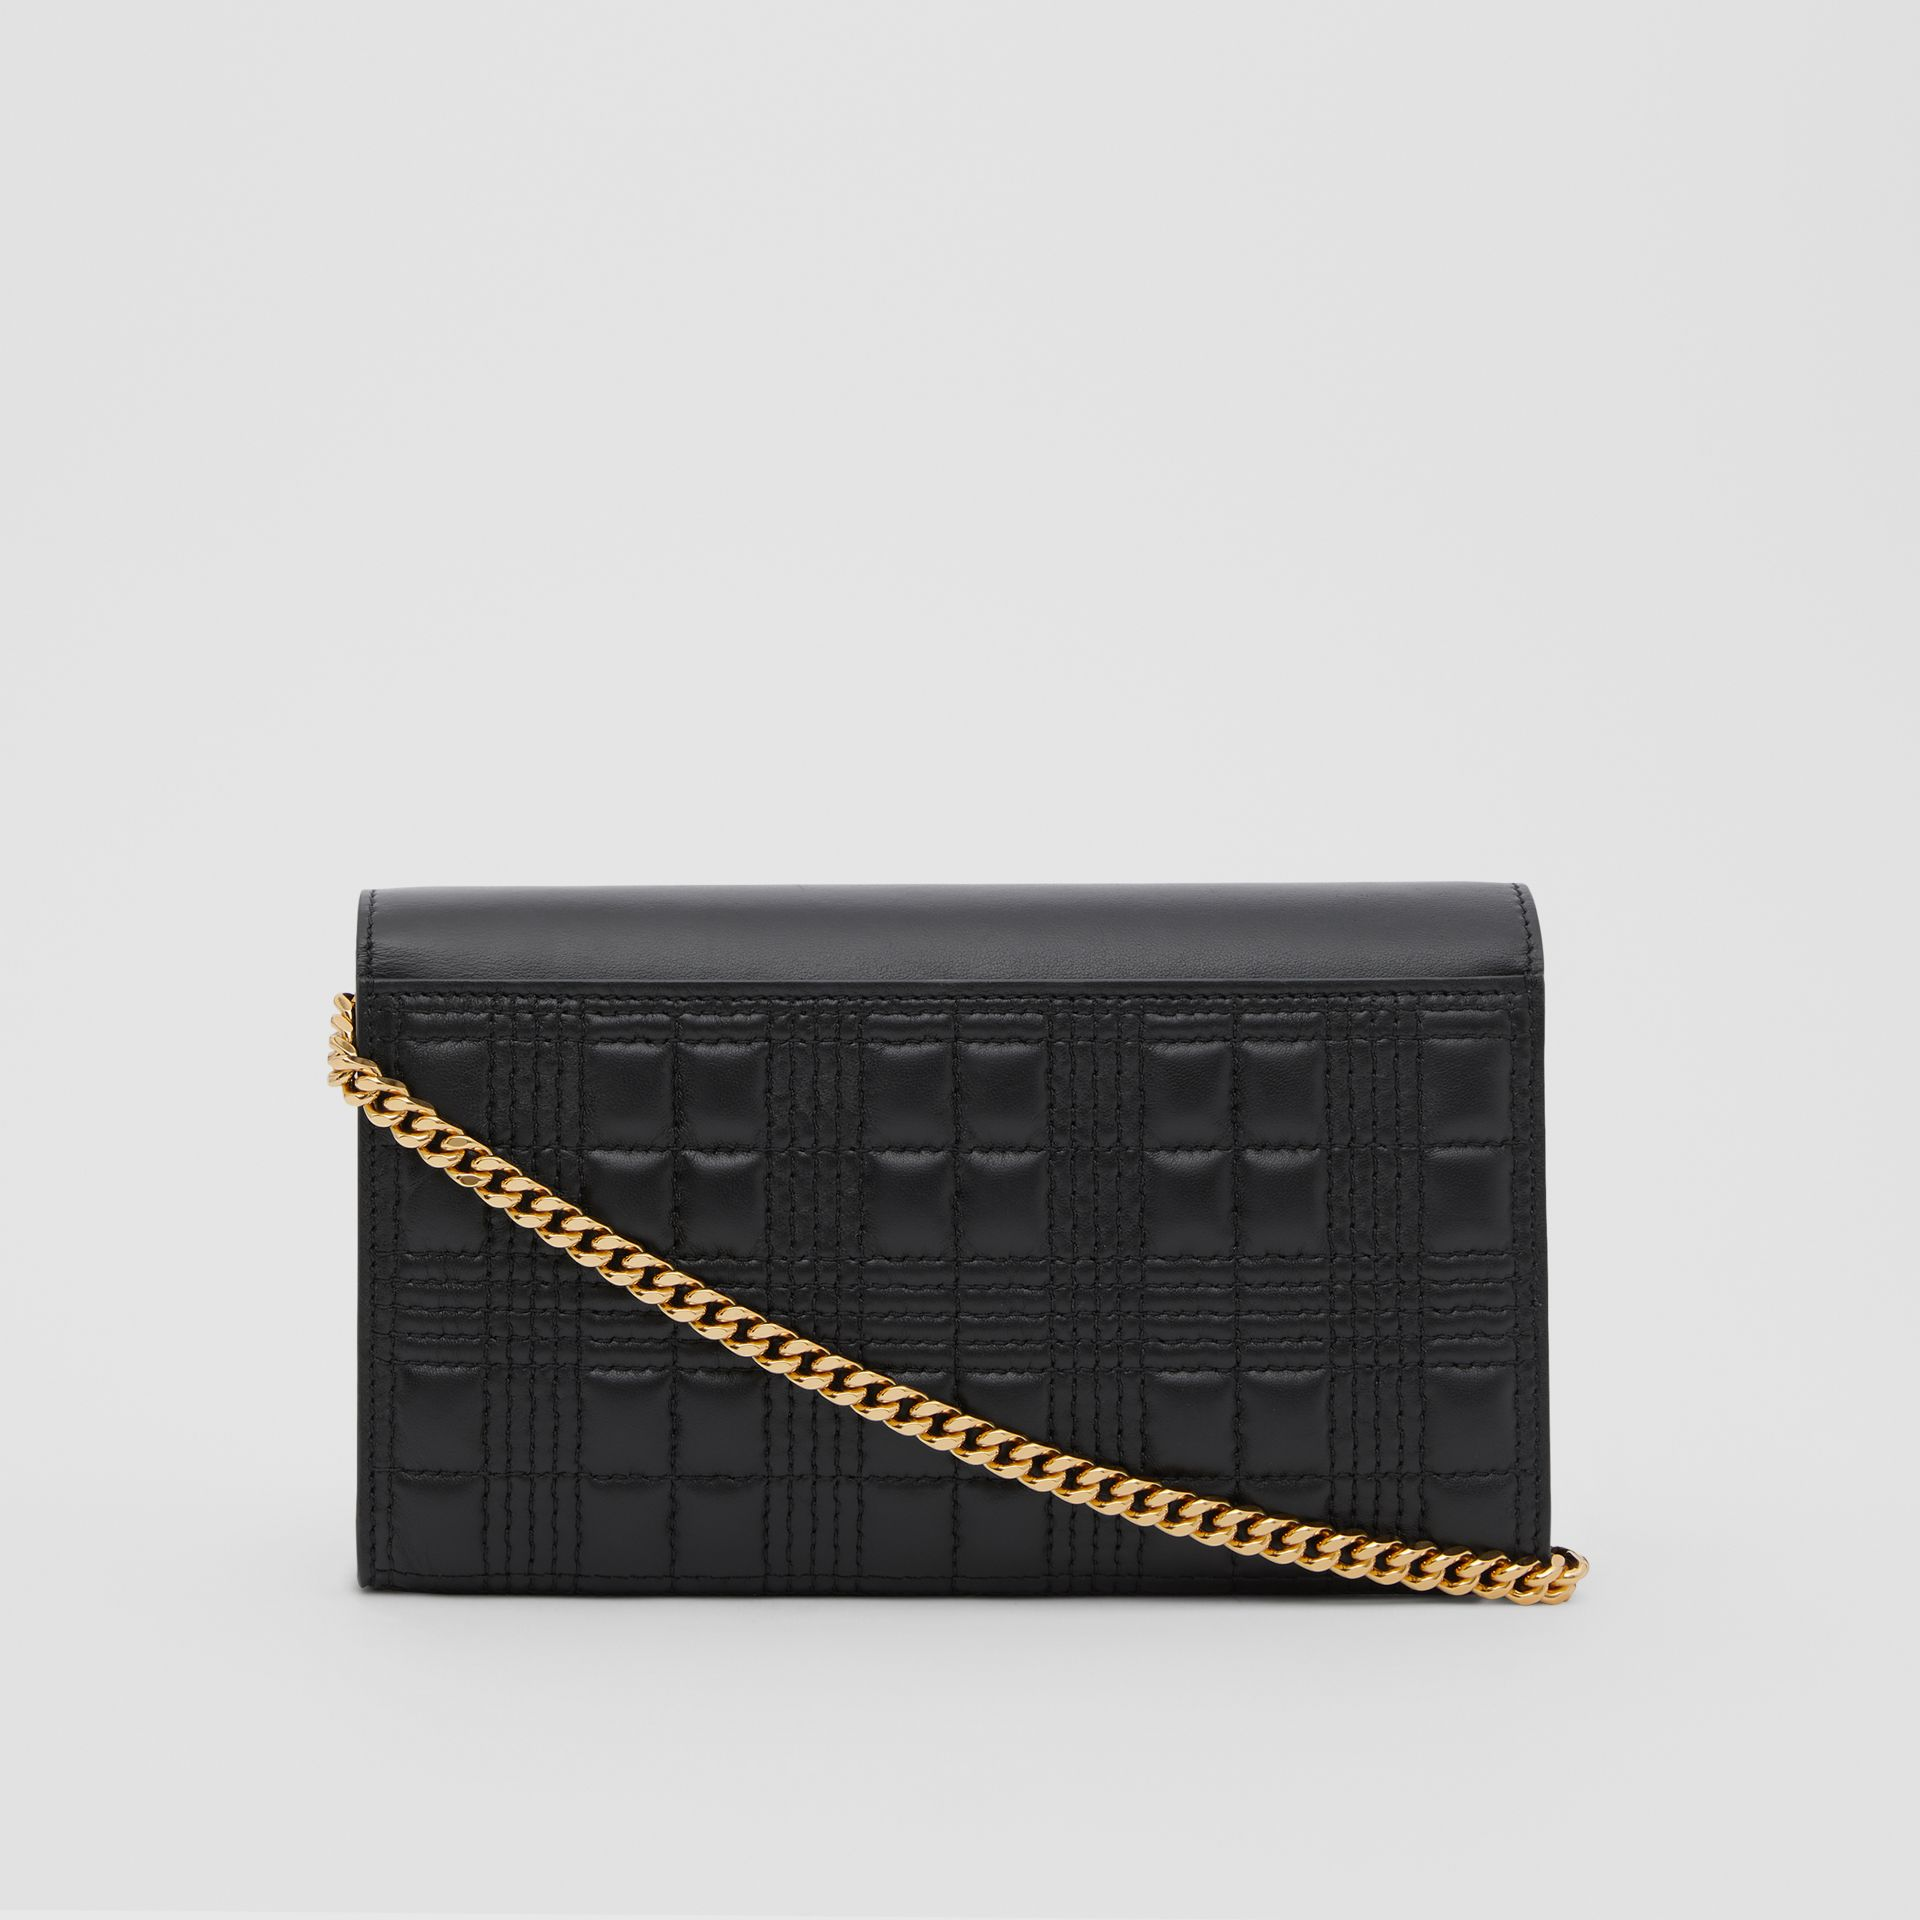 Quilted Lambskin Wallet with Detachable Chain Strap in Black - Women | Burberry United Kingdom - gallery image 7